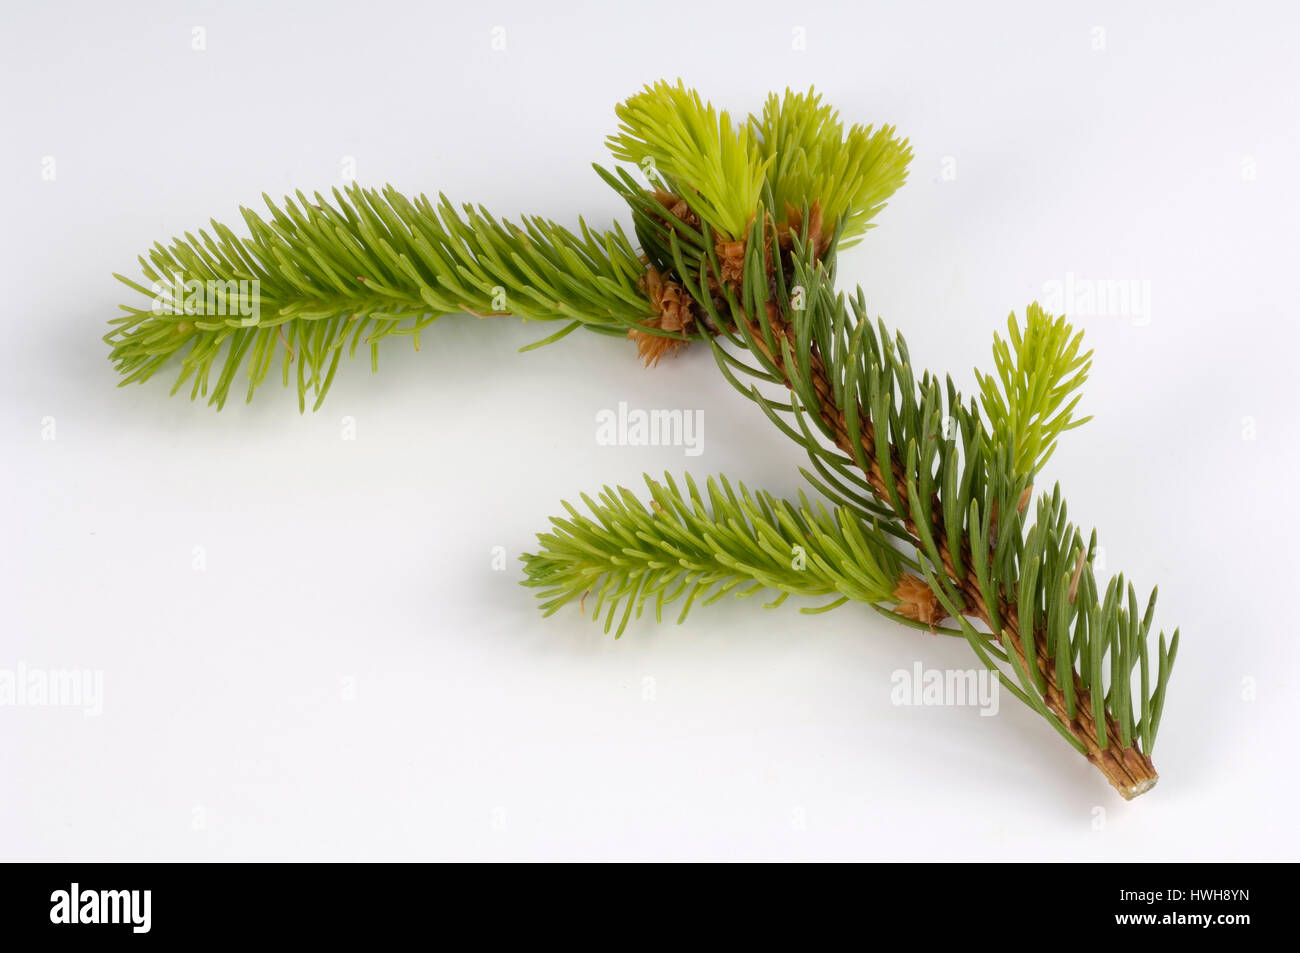 Norway Spruce, branch, Picea abies cut out, object, common spruce, branch, Picea abies free plate, branch / (Picea - Stock Image